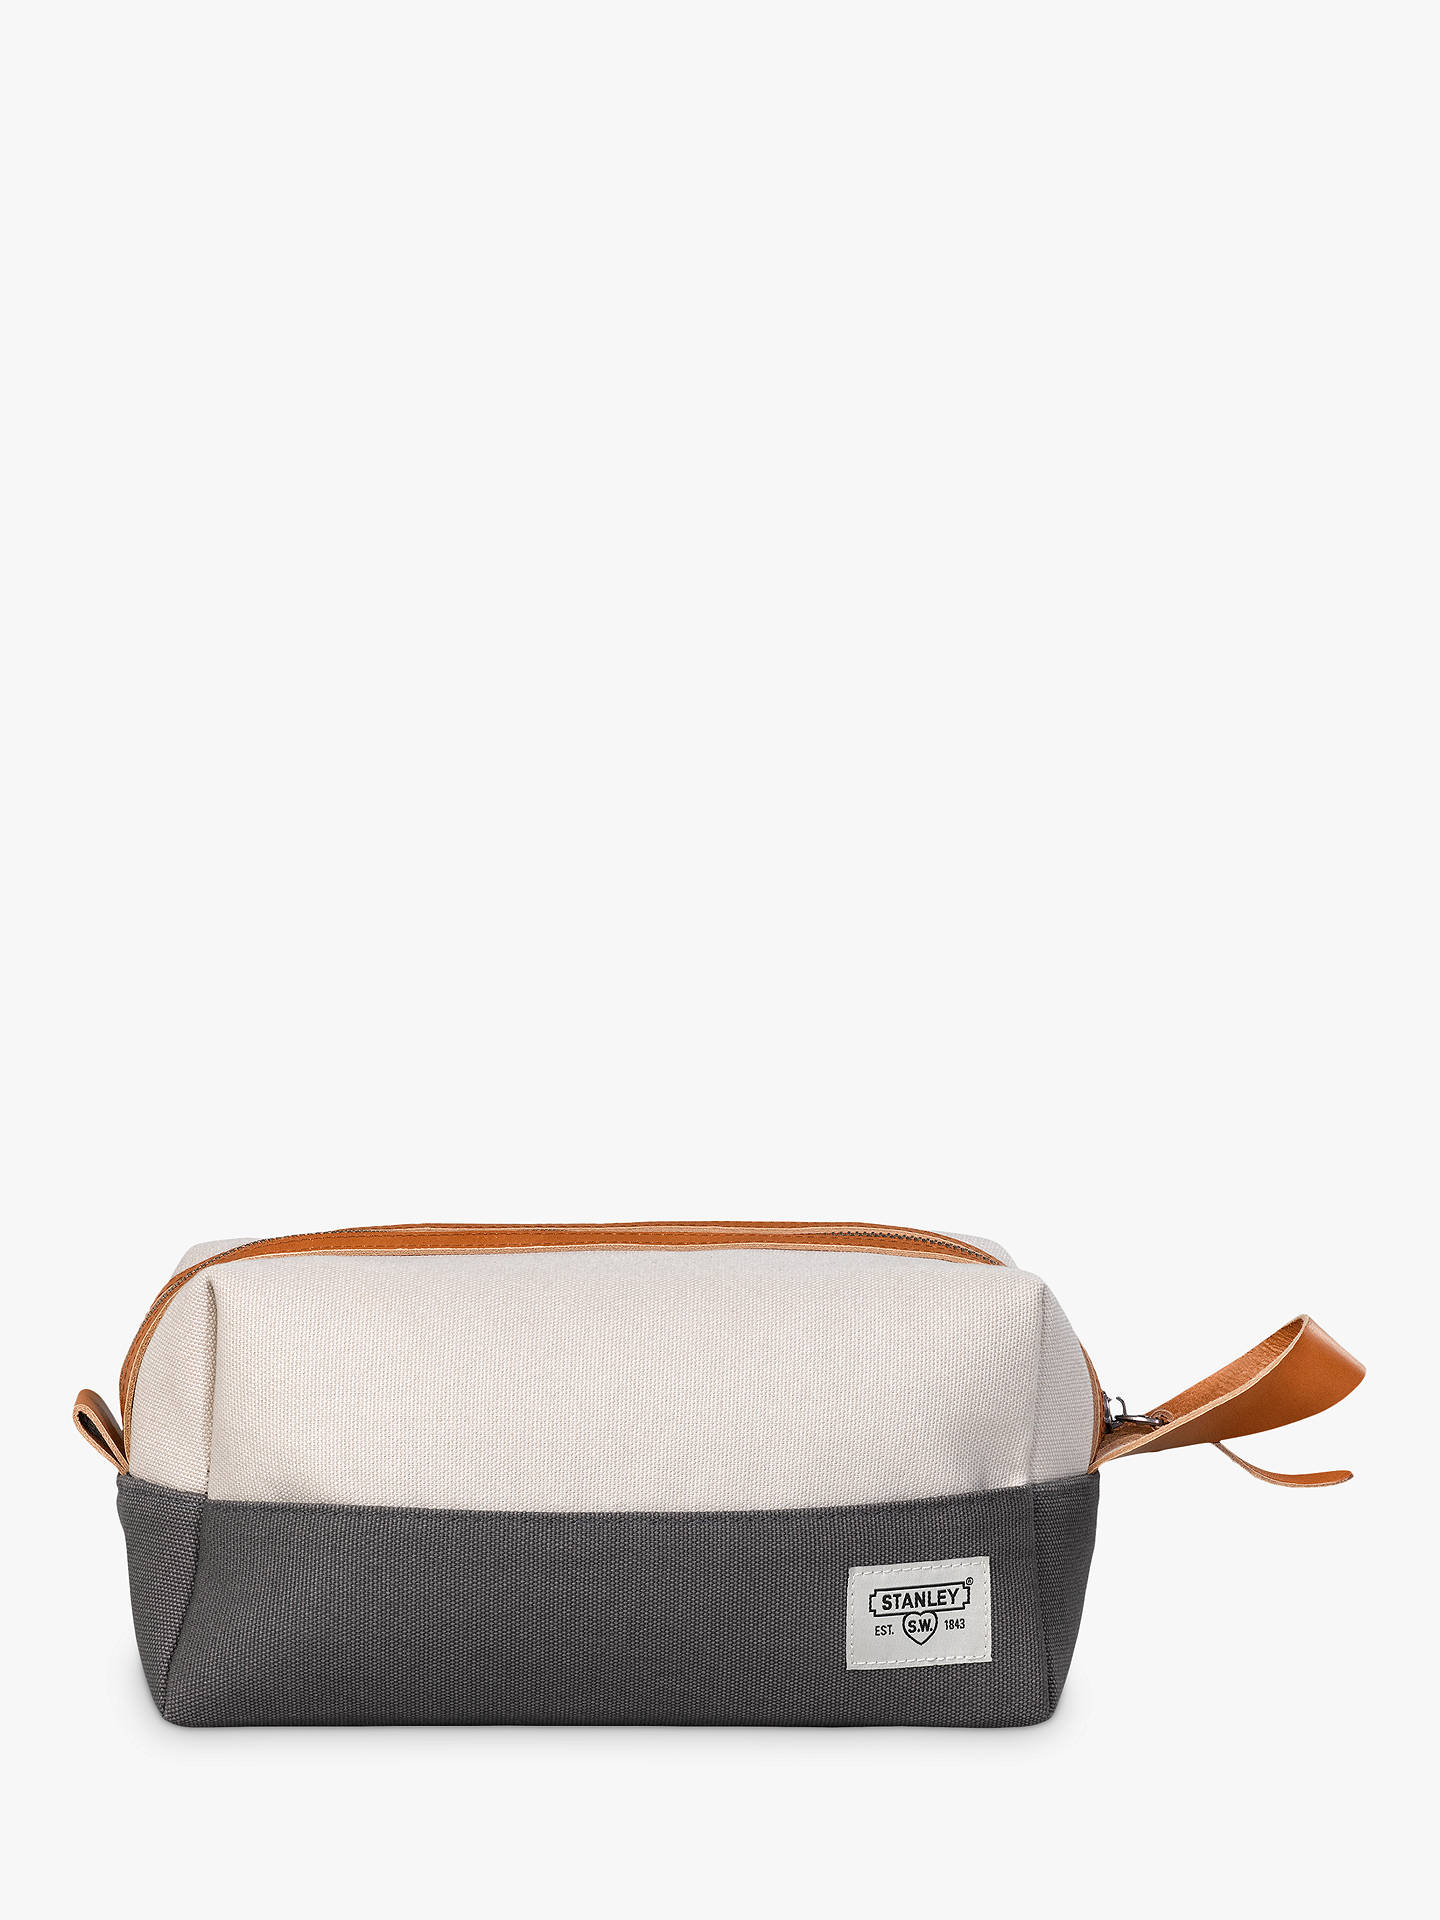 BuyStanley Wash Bag, Large Online at johnlewis.com